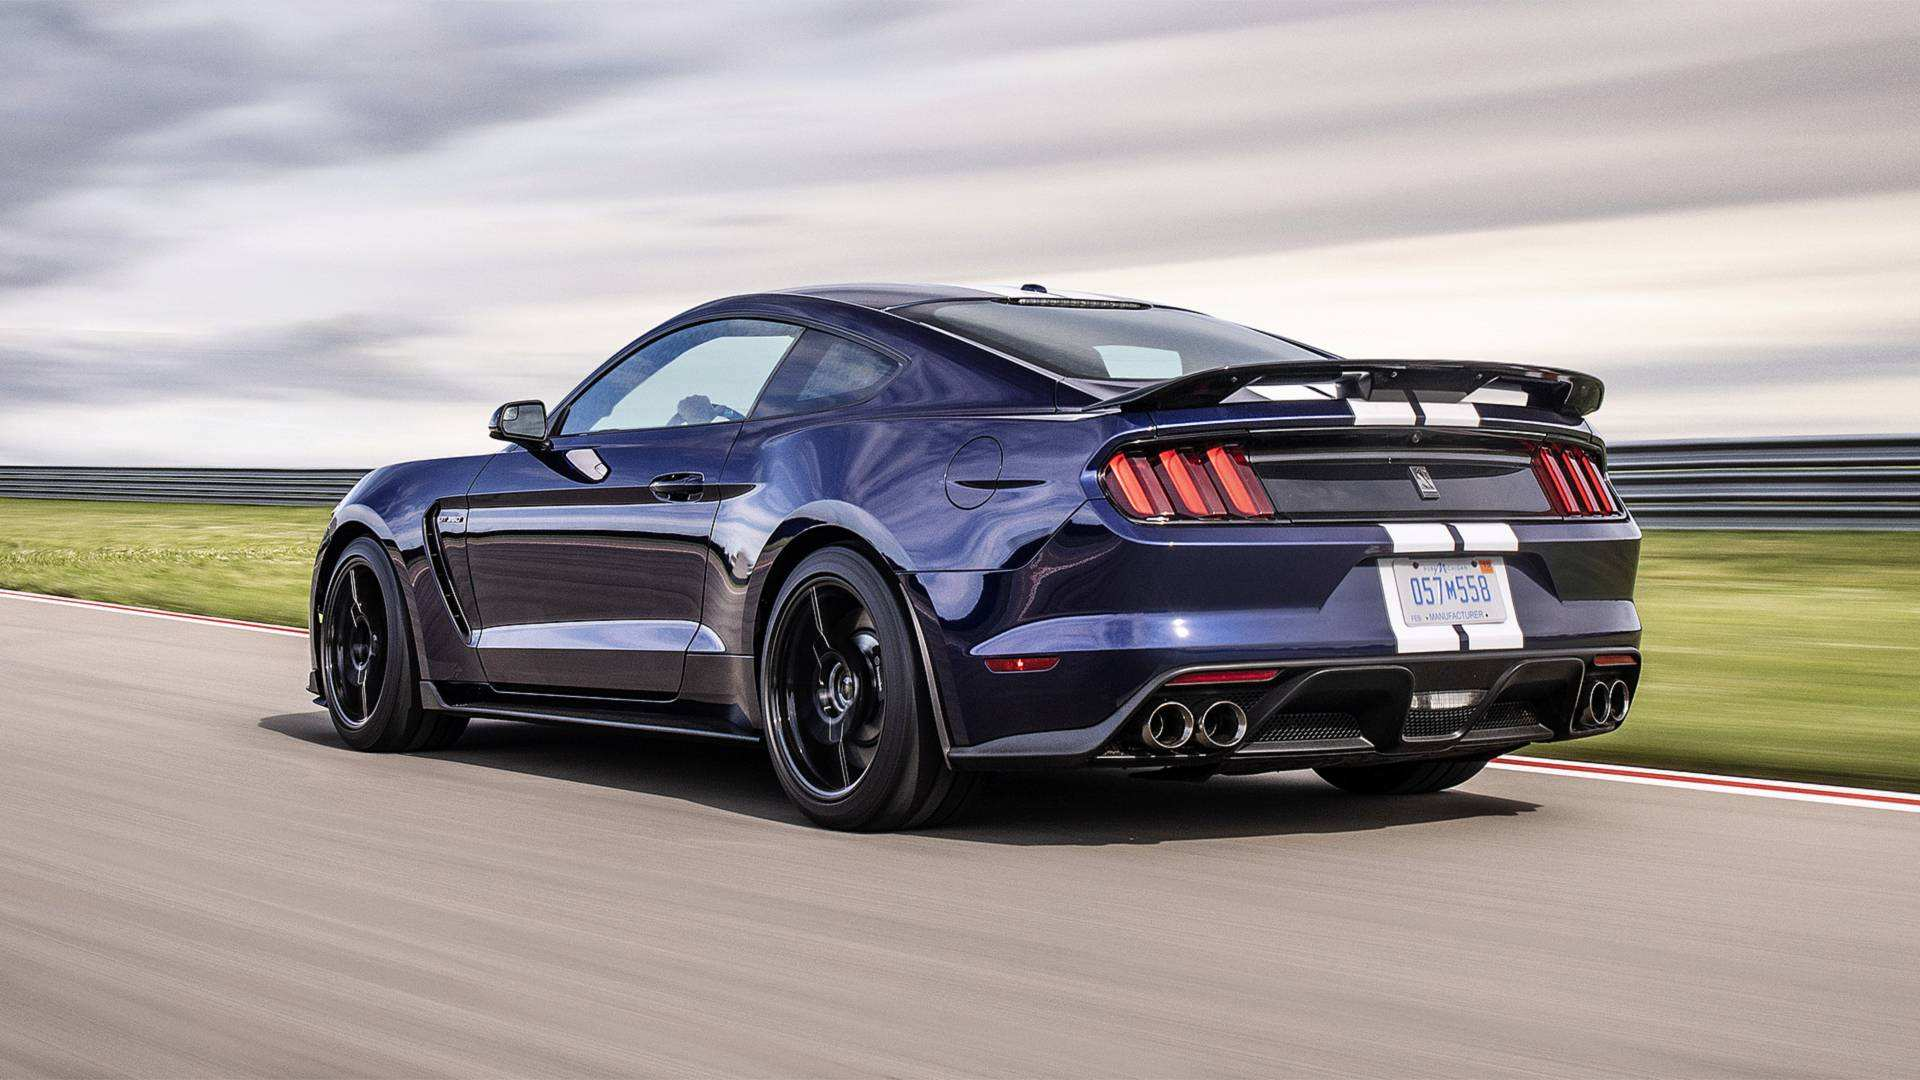 24 The Best 2019 Mustang Shelby Gt350 Wallpaper